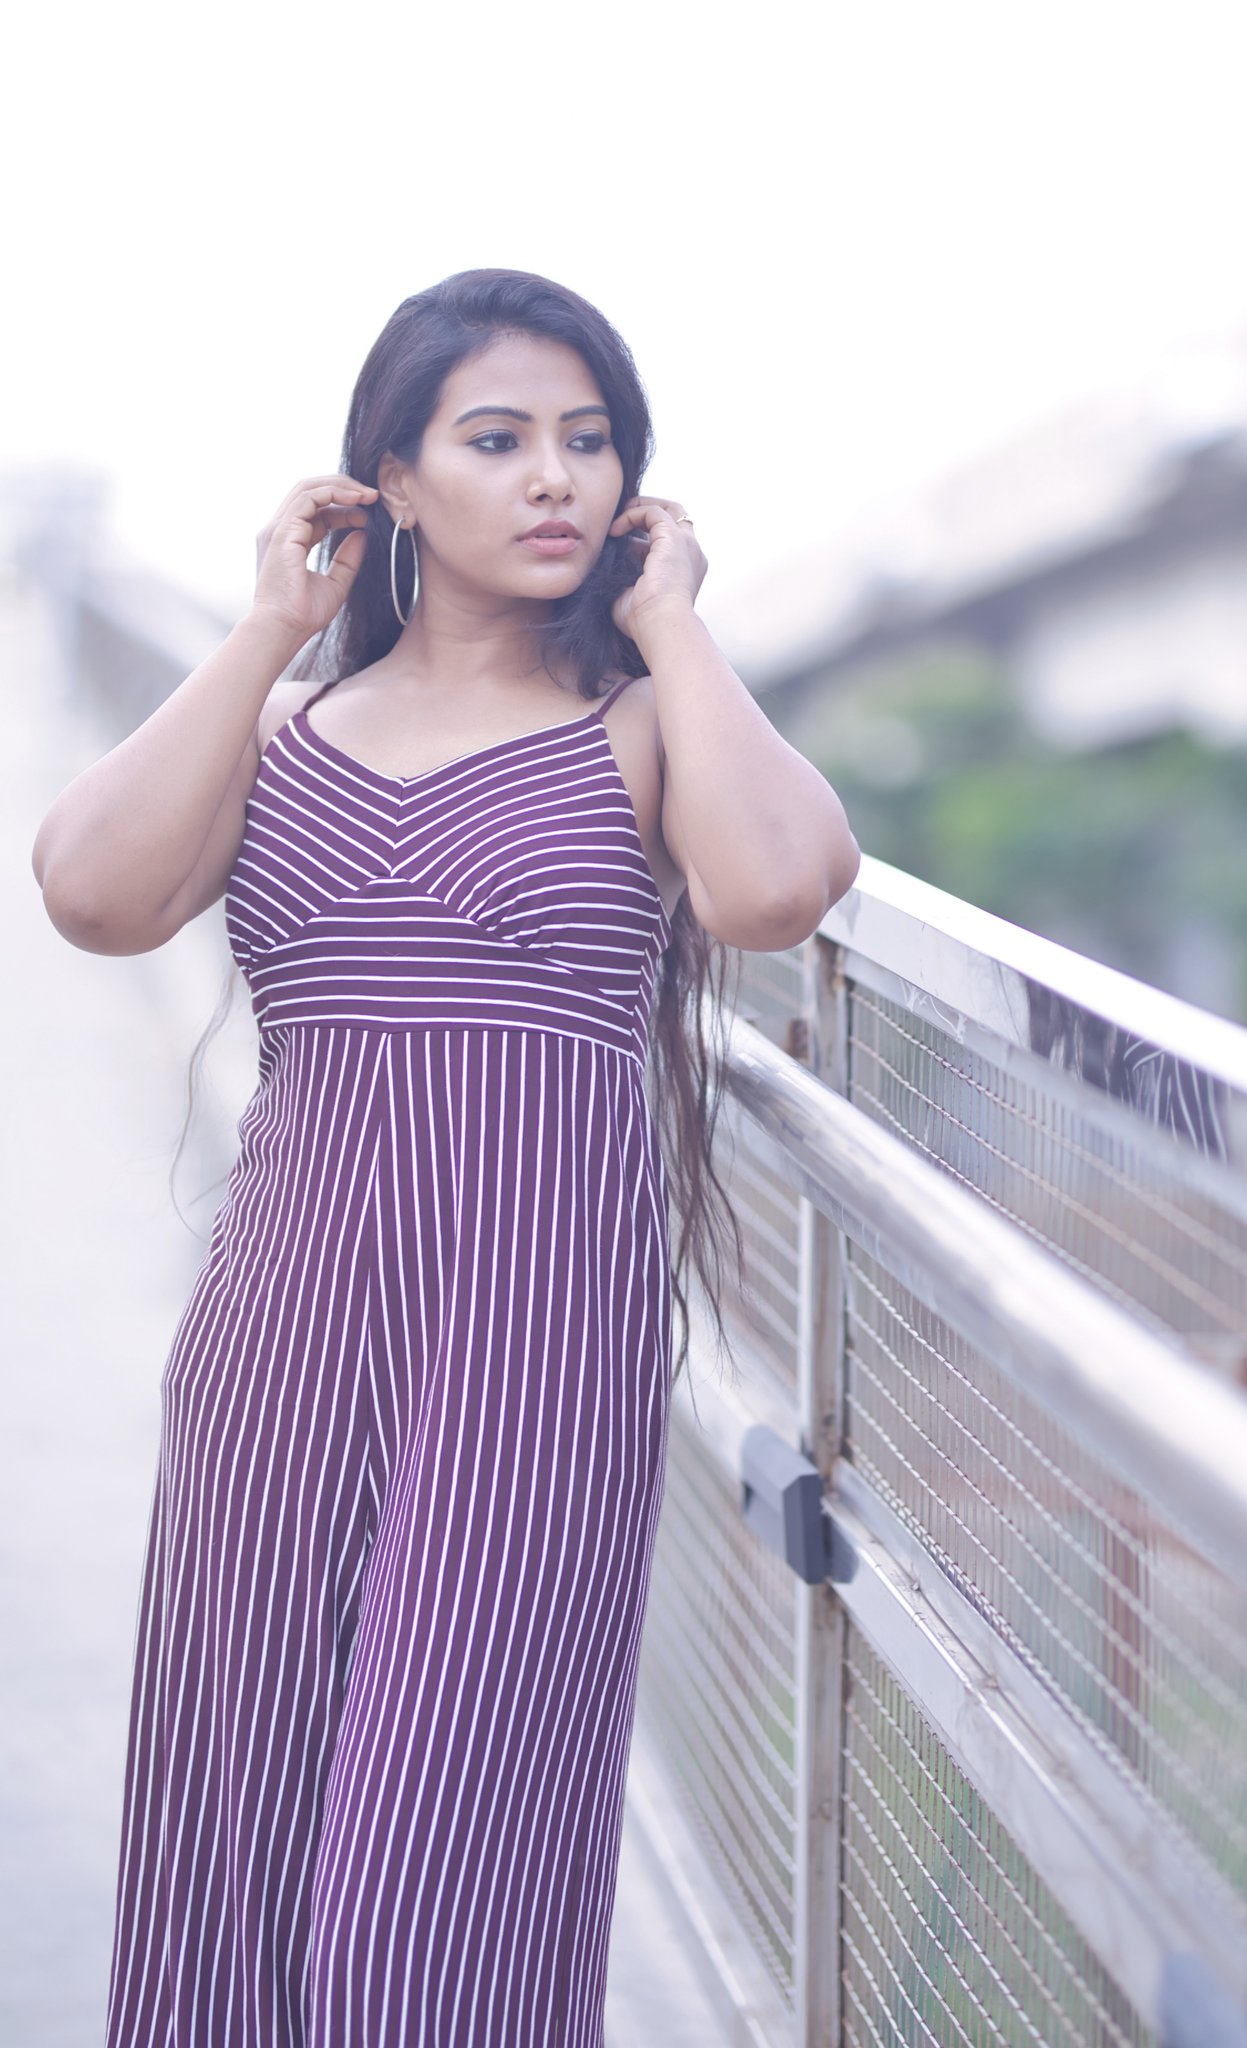 Actress Dhivya Dhuraisamy is very beautiful in blue dress